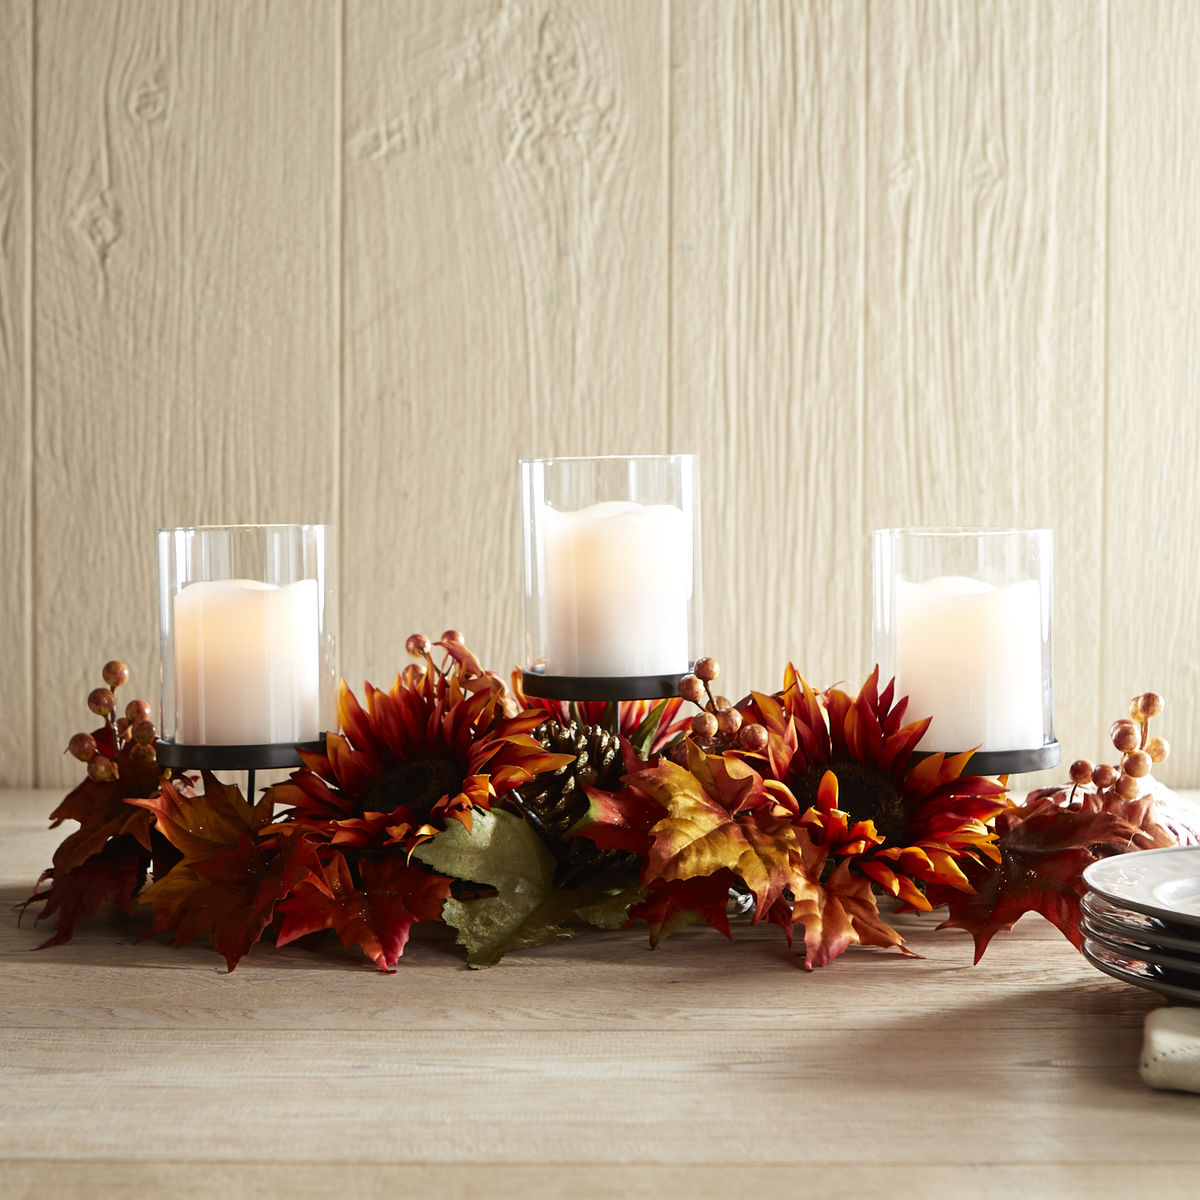 10 Best Table Centerpieces For Fall 2017 Centerpieces